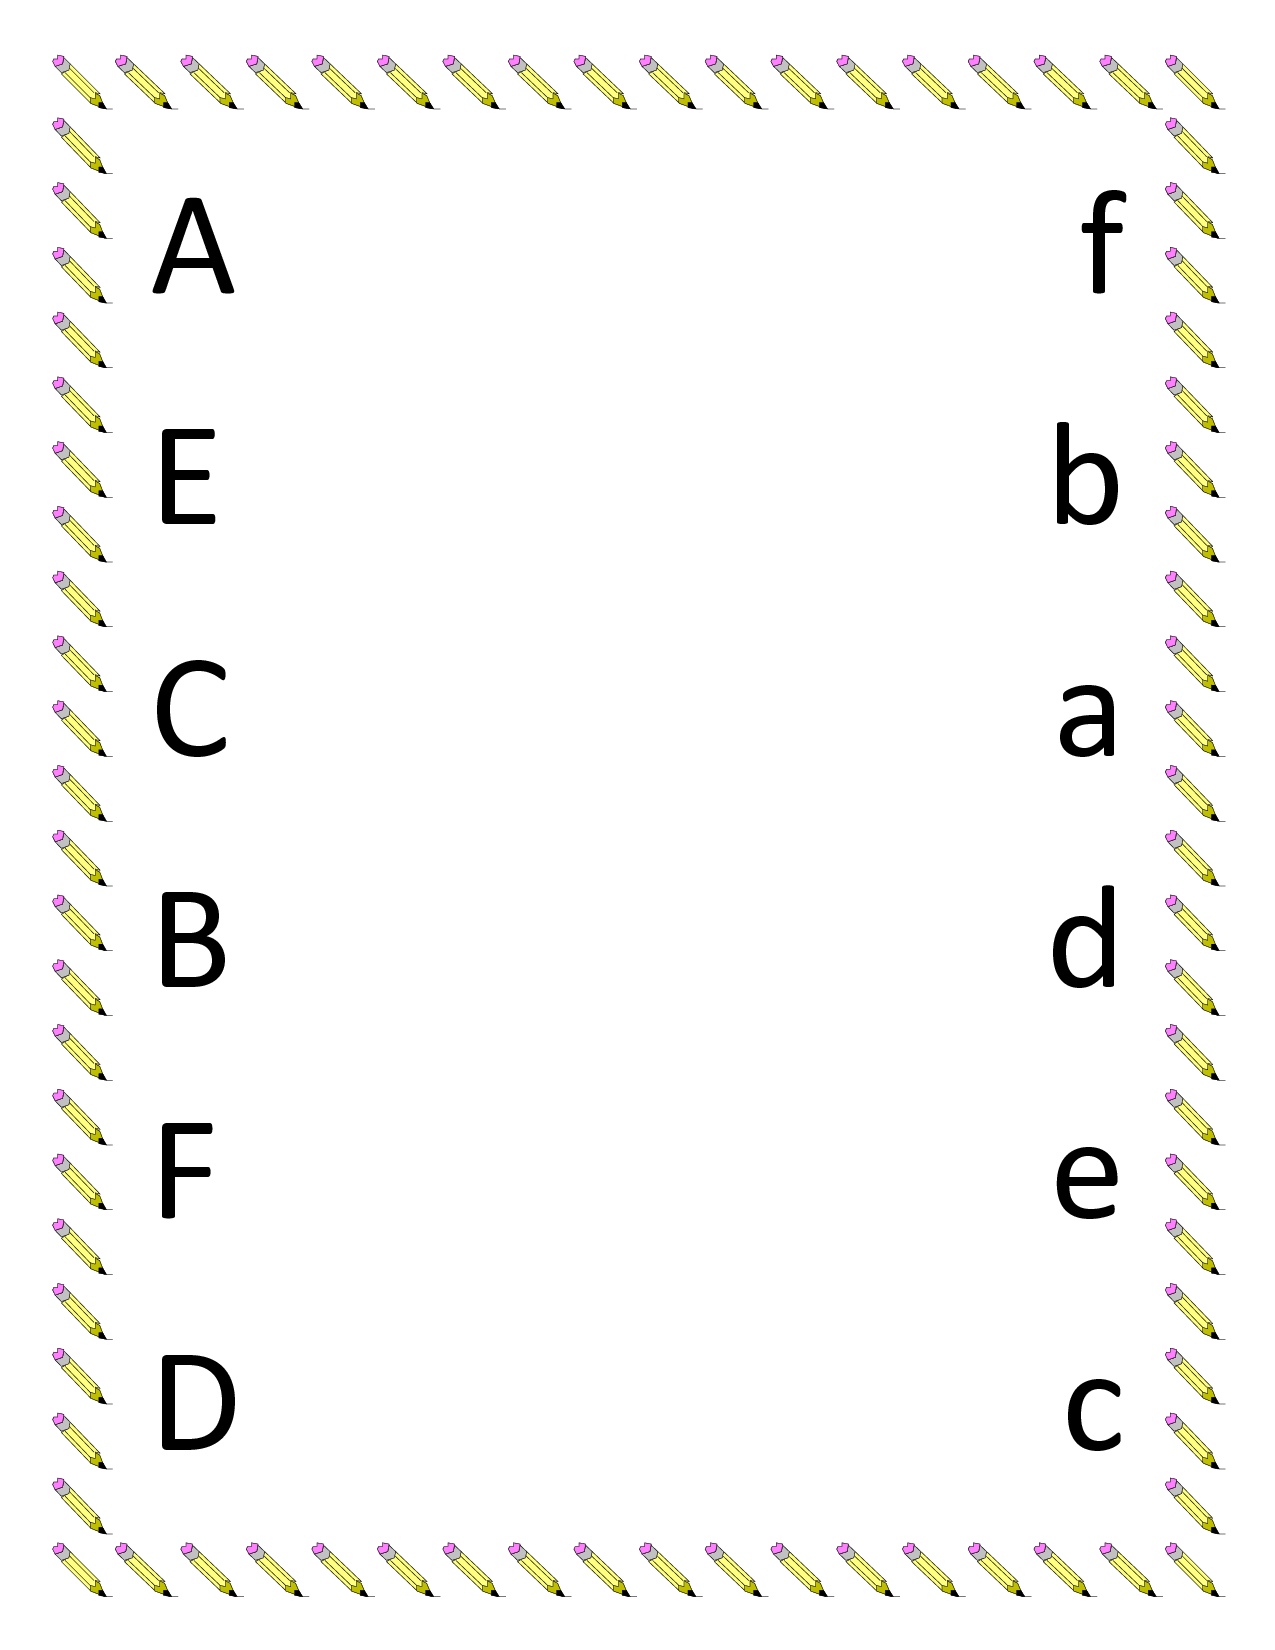 kindergarten worksheets Preschool worksheets – Kindergarten Matching Worksheets